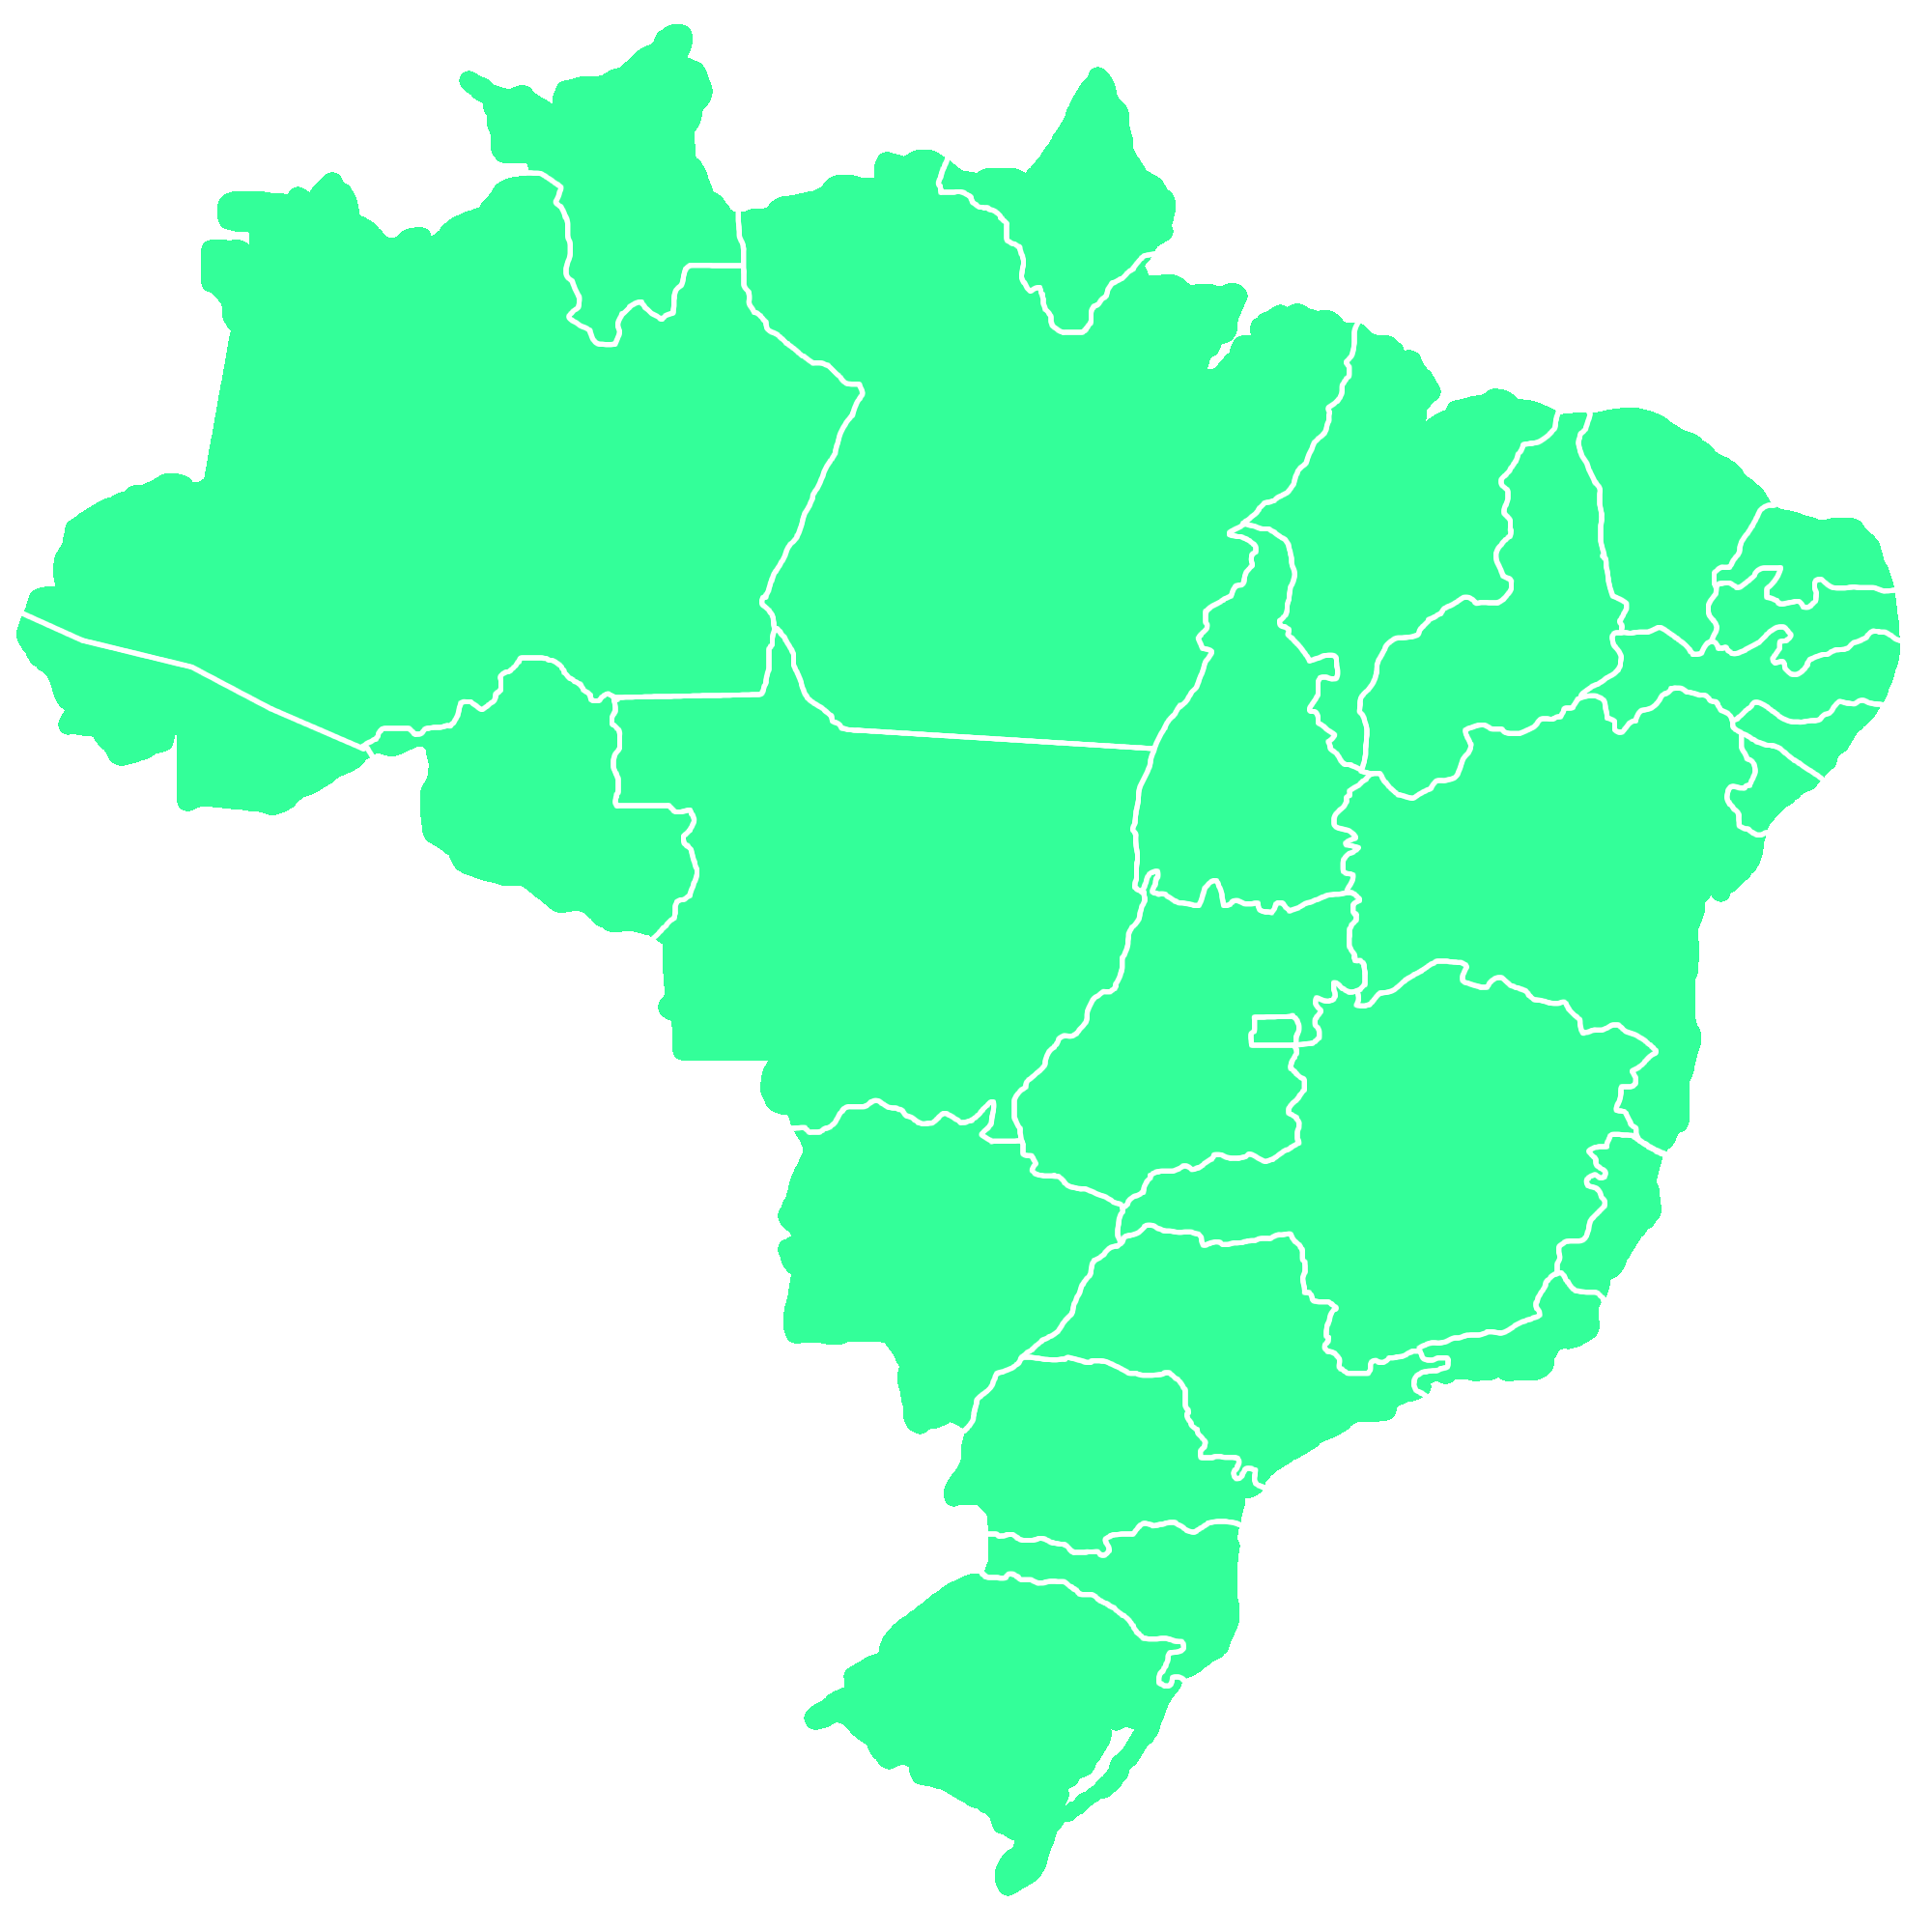 FileMap Of Brazil Statespng Wikimedia Commons - Brazil map